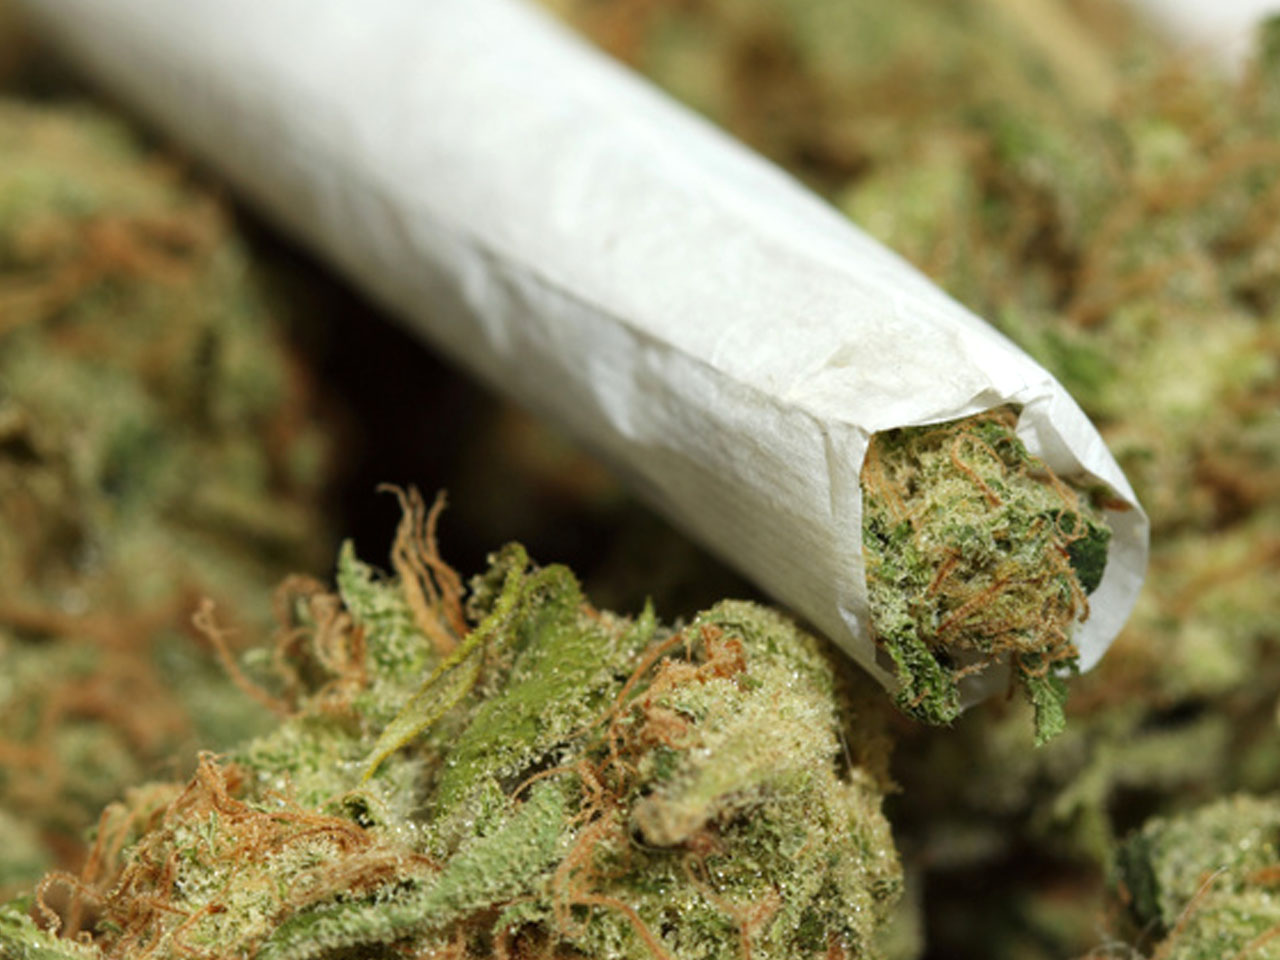 Jail Me In Jamaica Pleads Weed Smoker Zambia Daily Mail